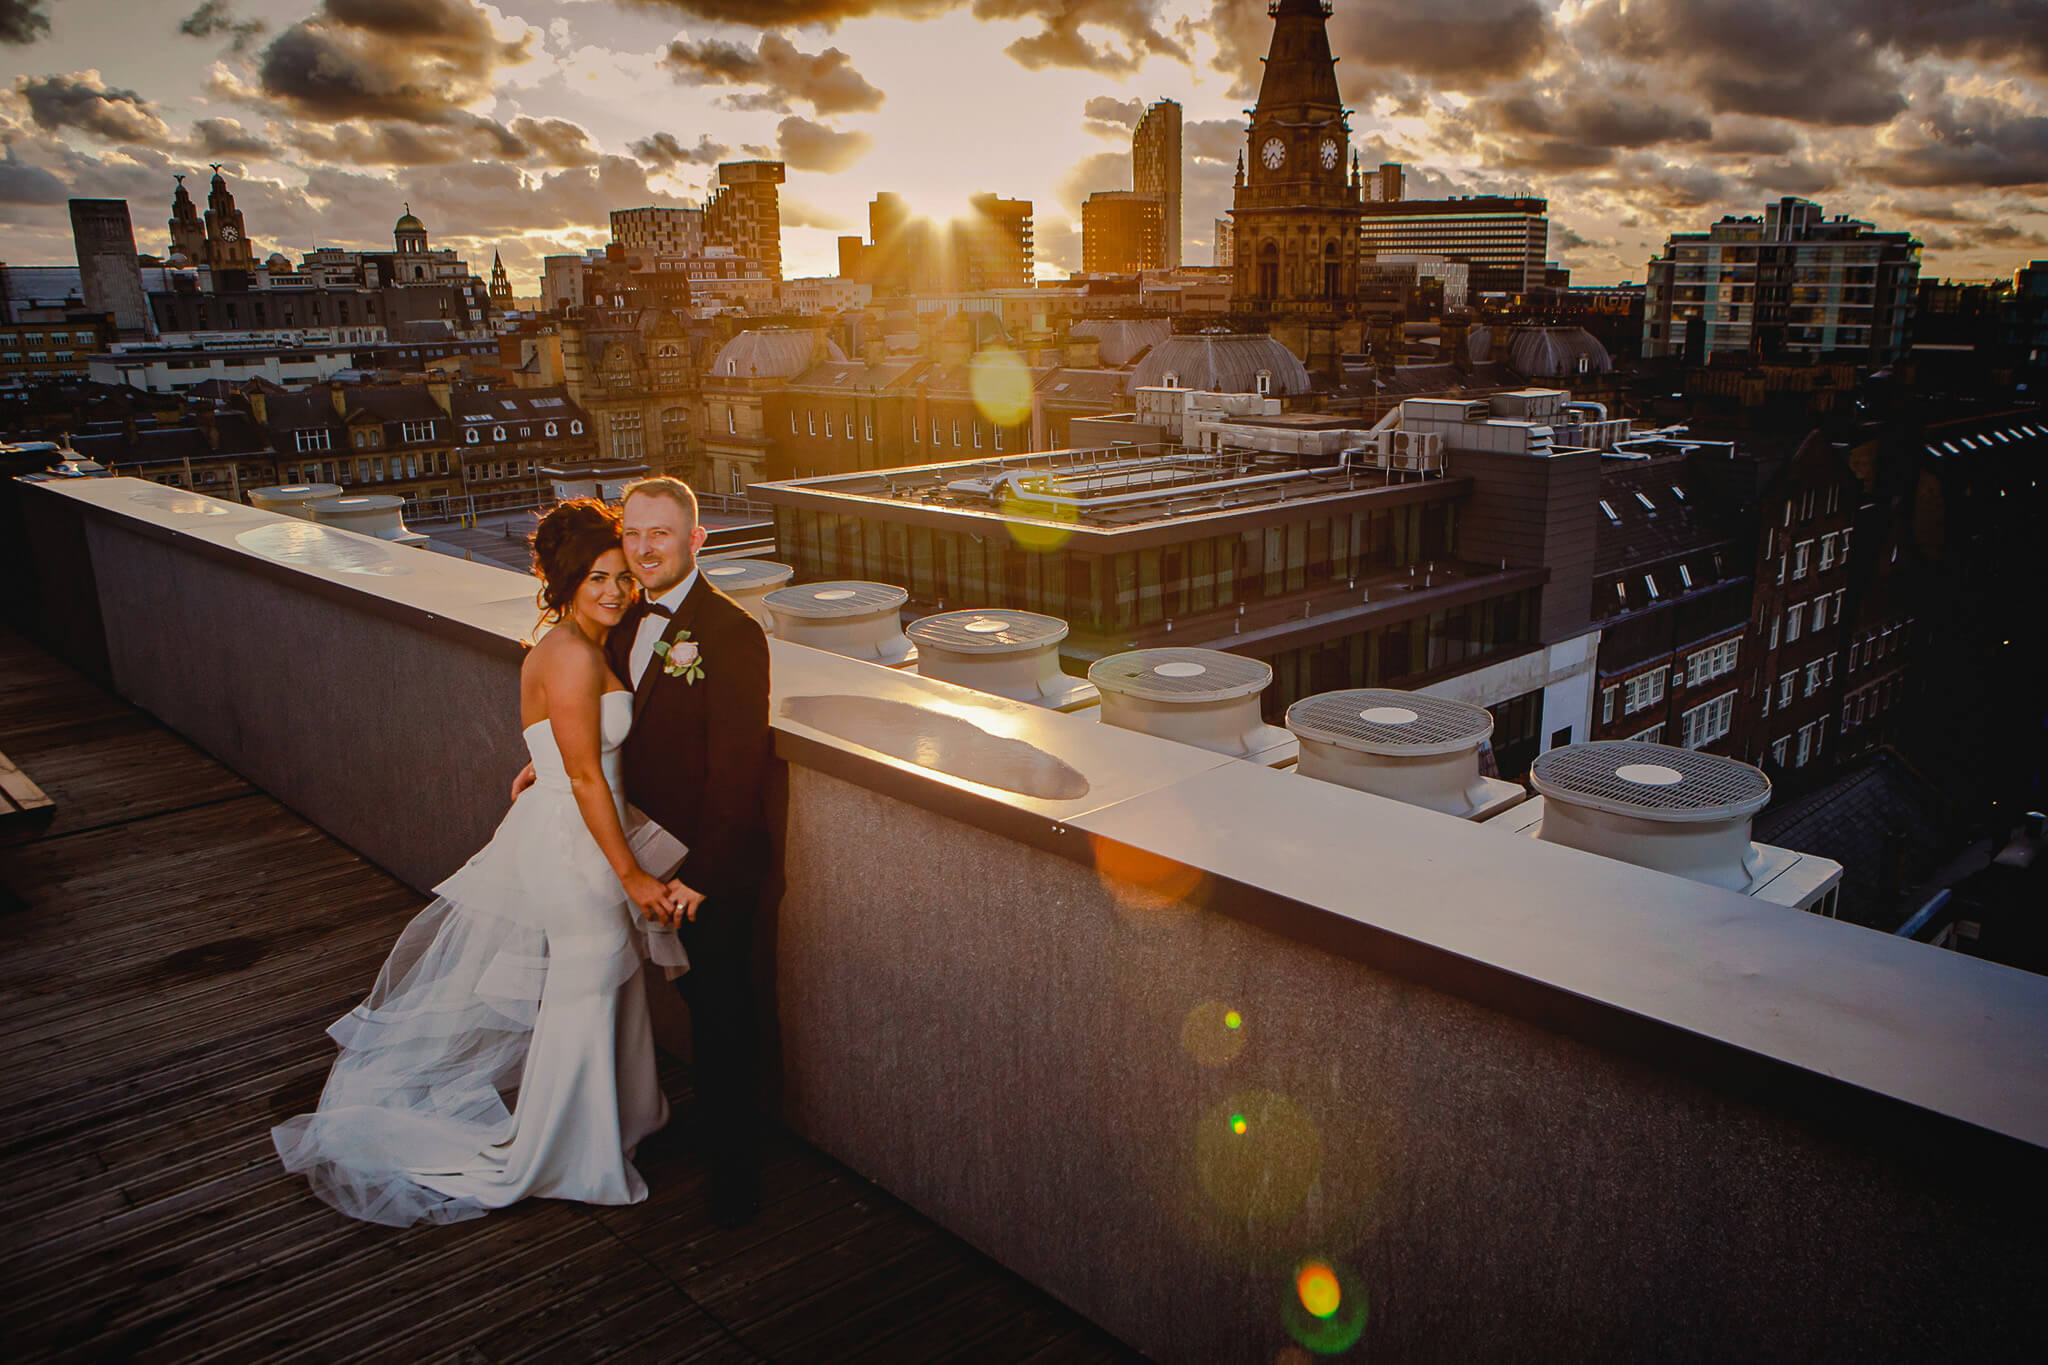 shankly-hotel-wedding-photographer-liverpool-stanbury-photography-029